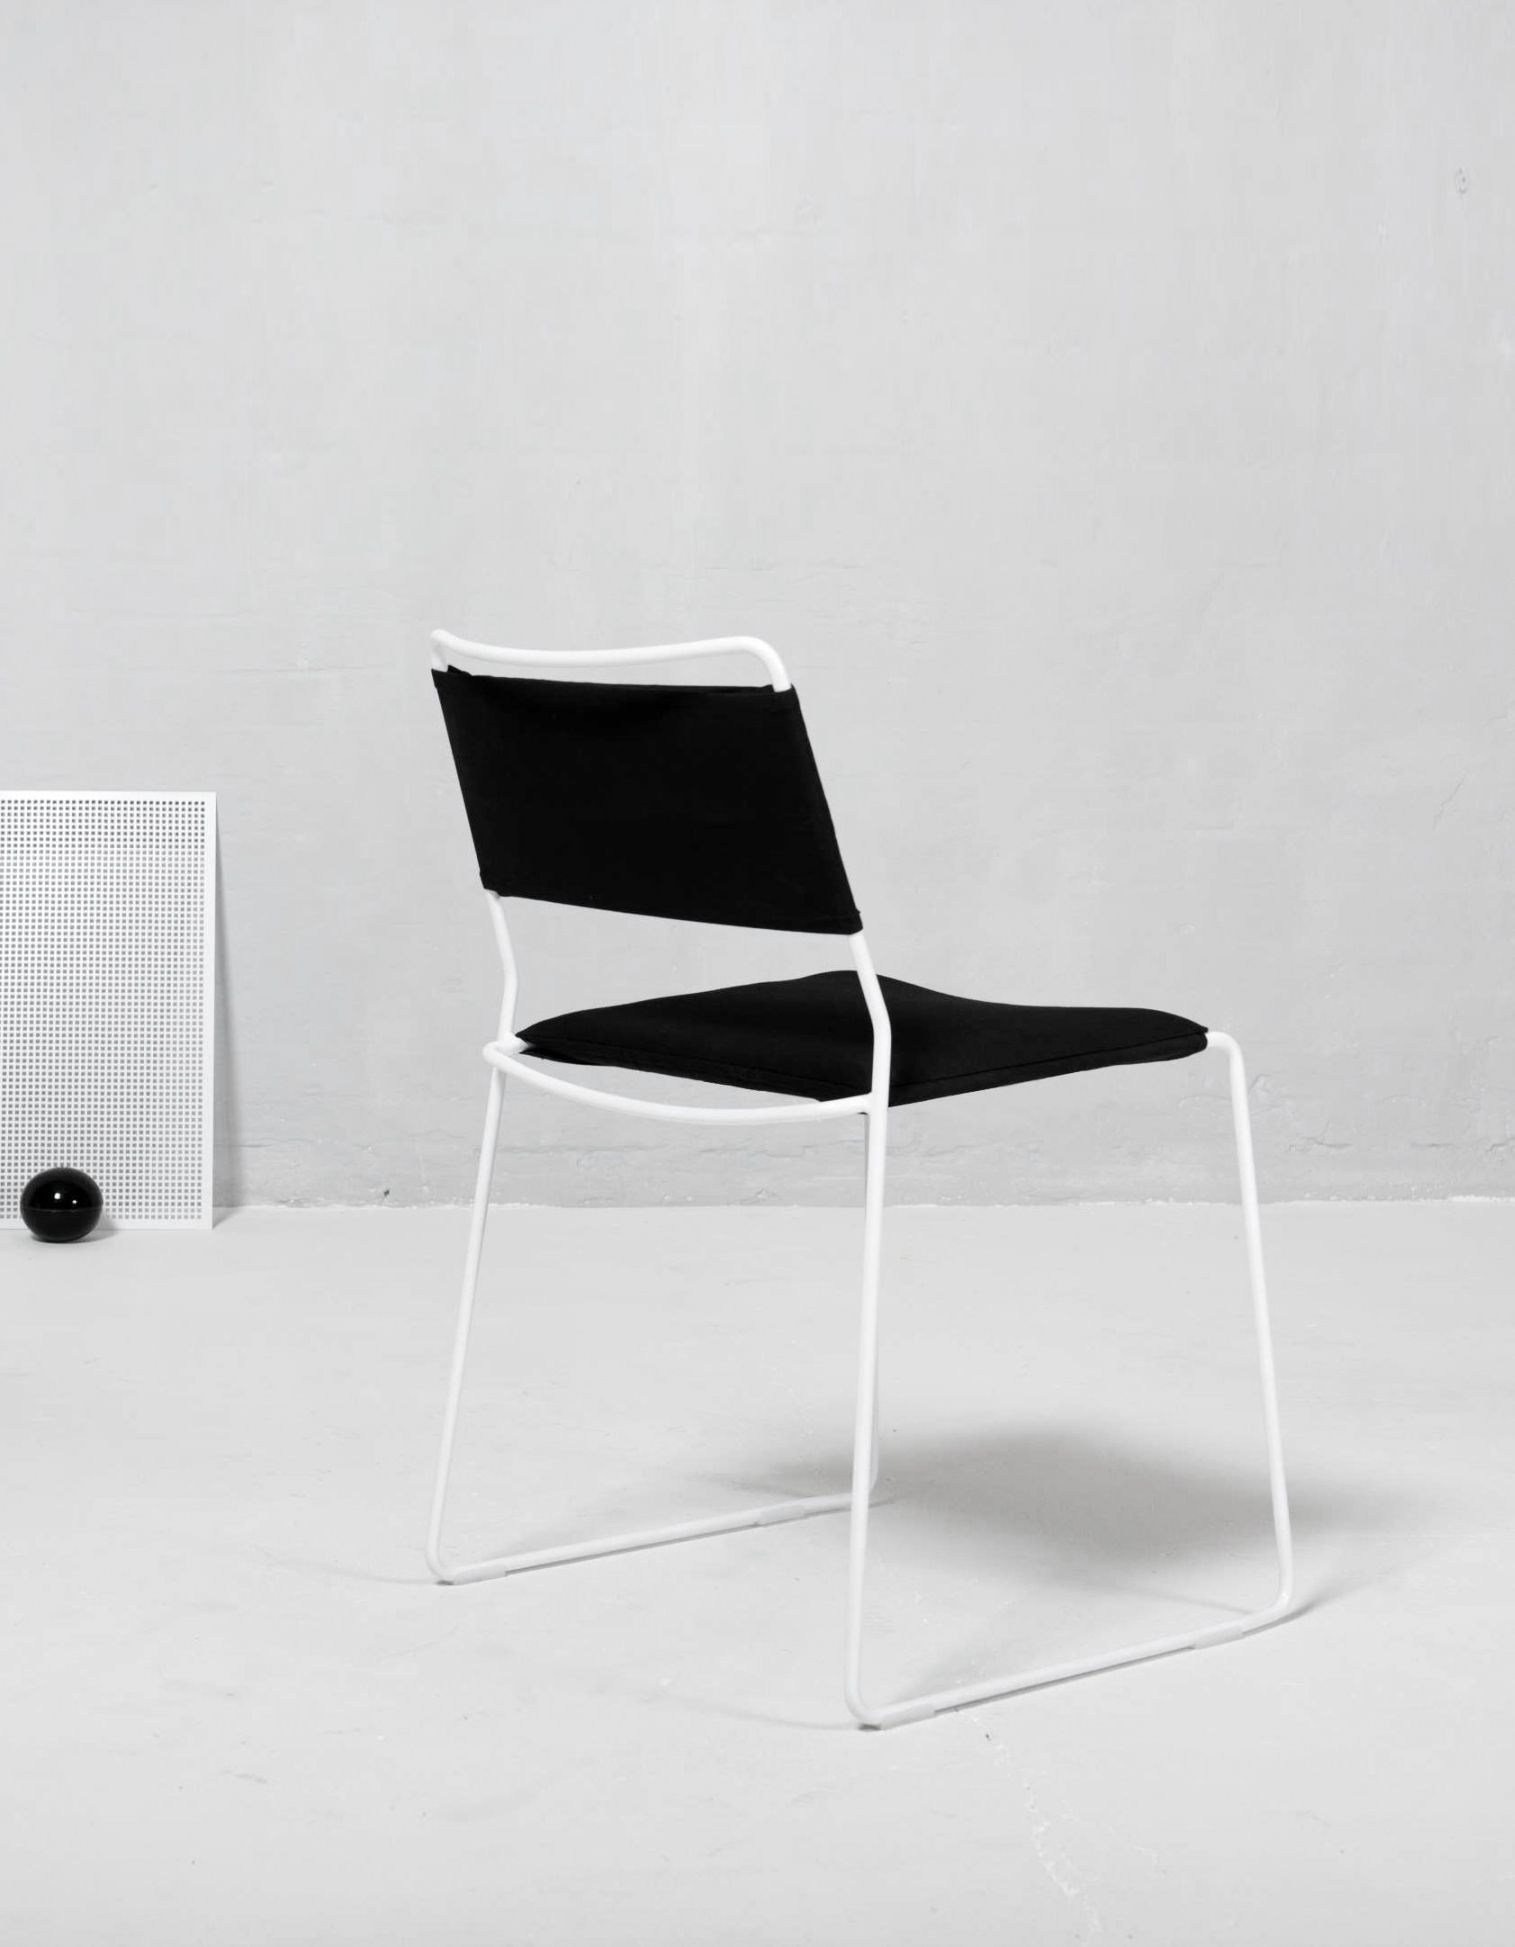 Aesence - Minimal Furniture Design - One Wire Chair Designed